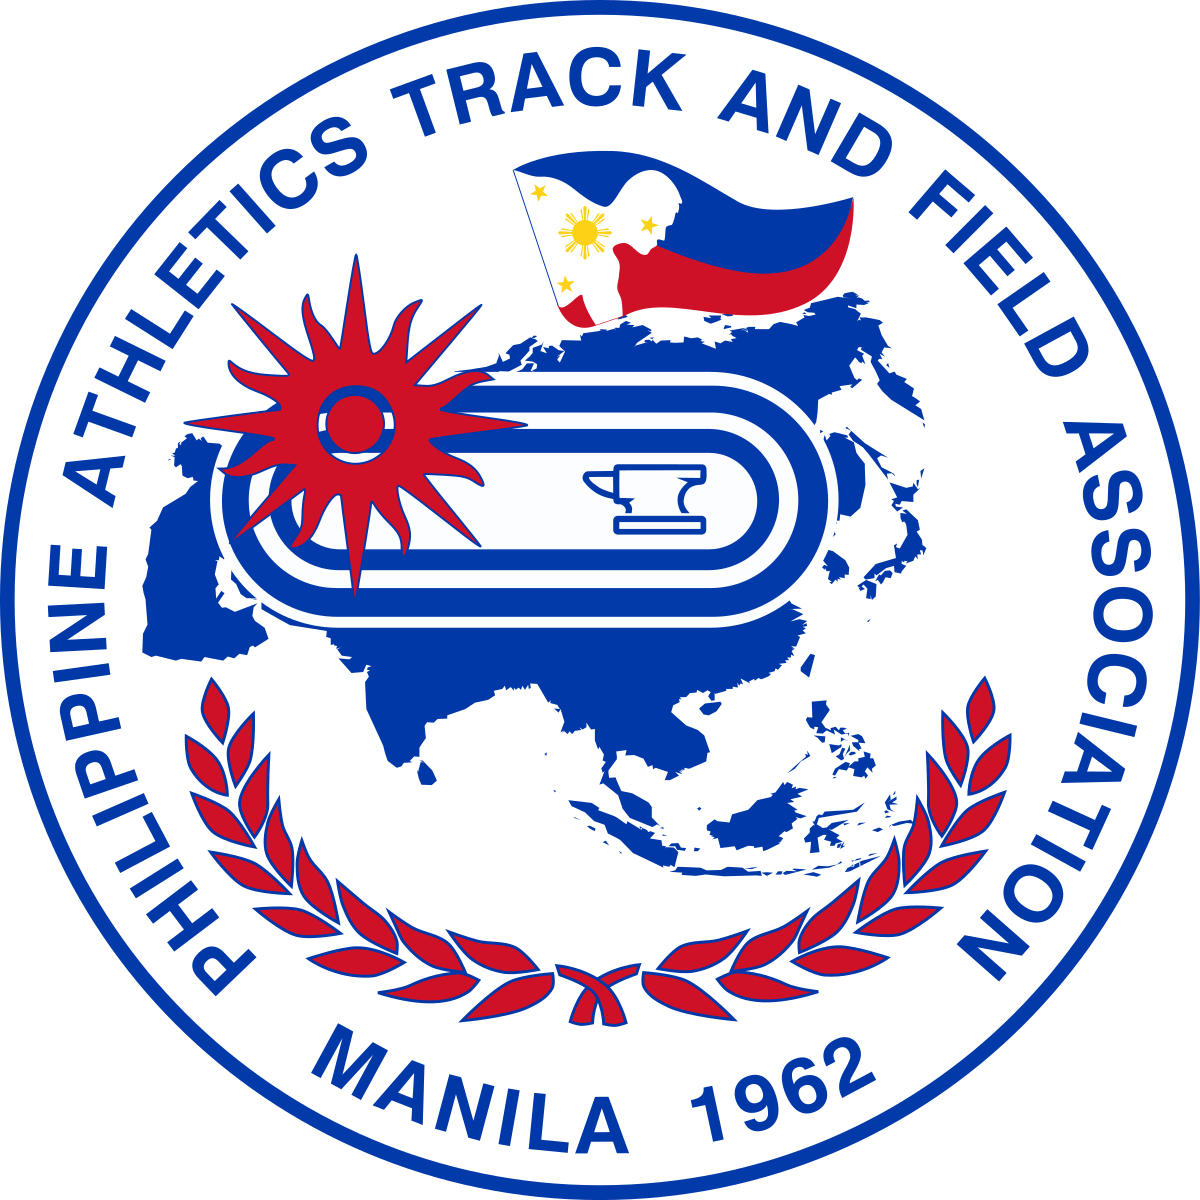 Logo clipart track and field. Philippine athletics association wikipedia